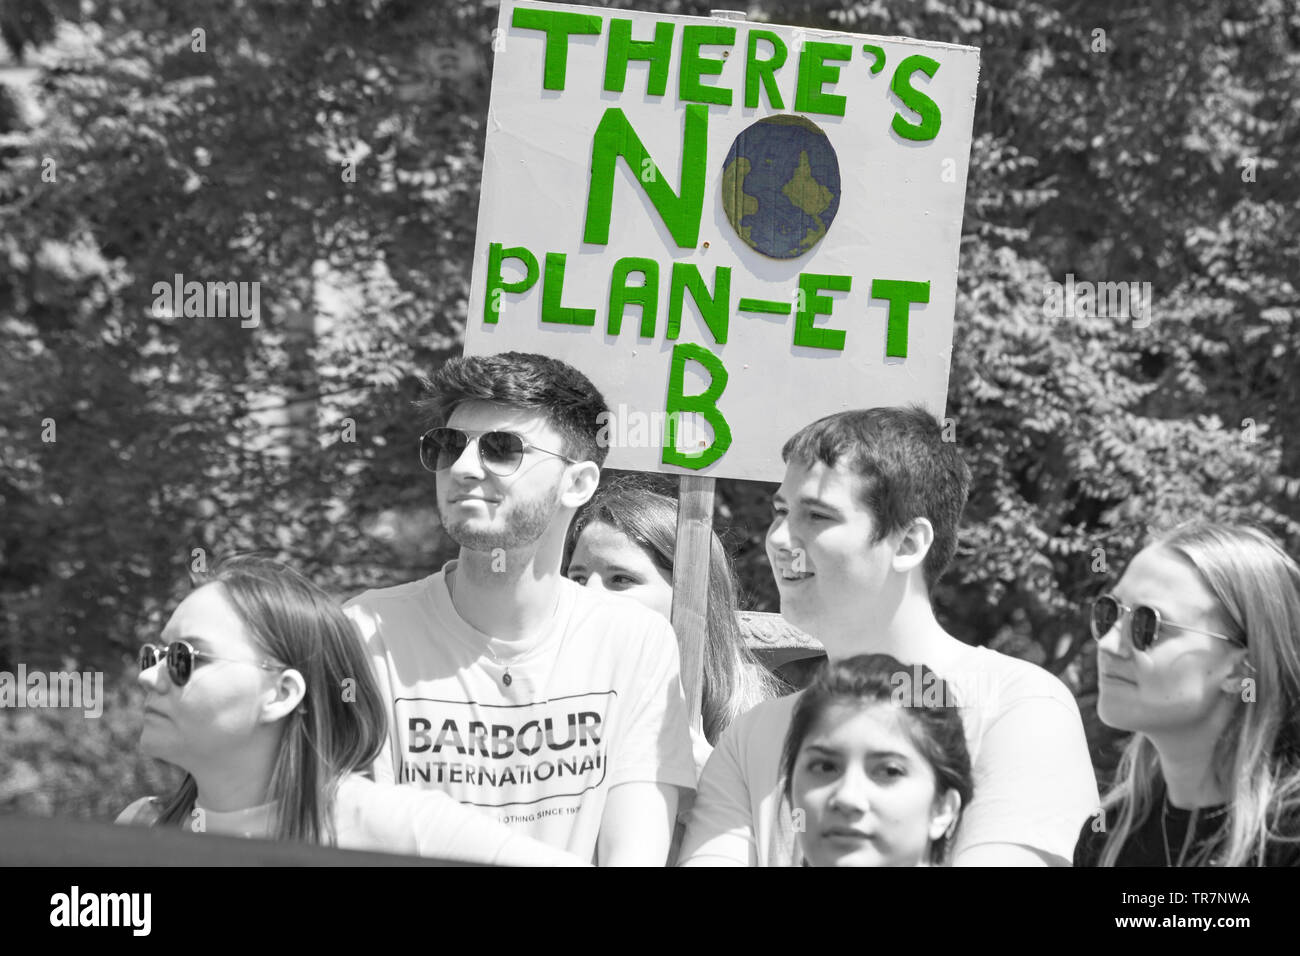 Students holding there's no plan-et B banner sign at Youth Strike 4 Climate at Bournemouth, Dorset in May Stock Photo